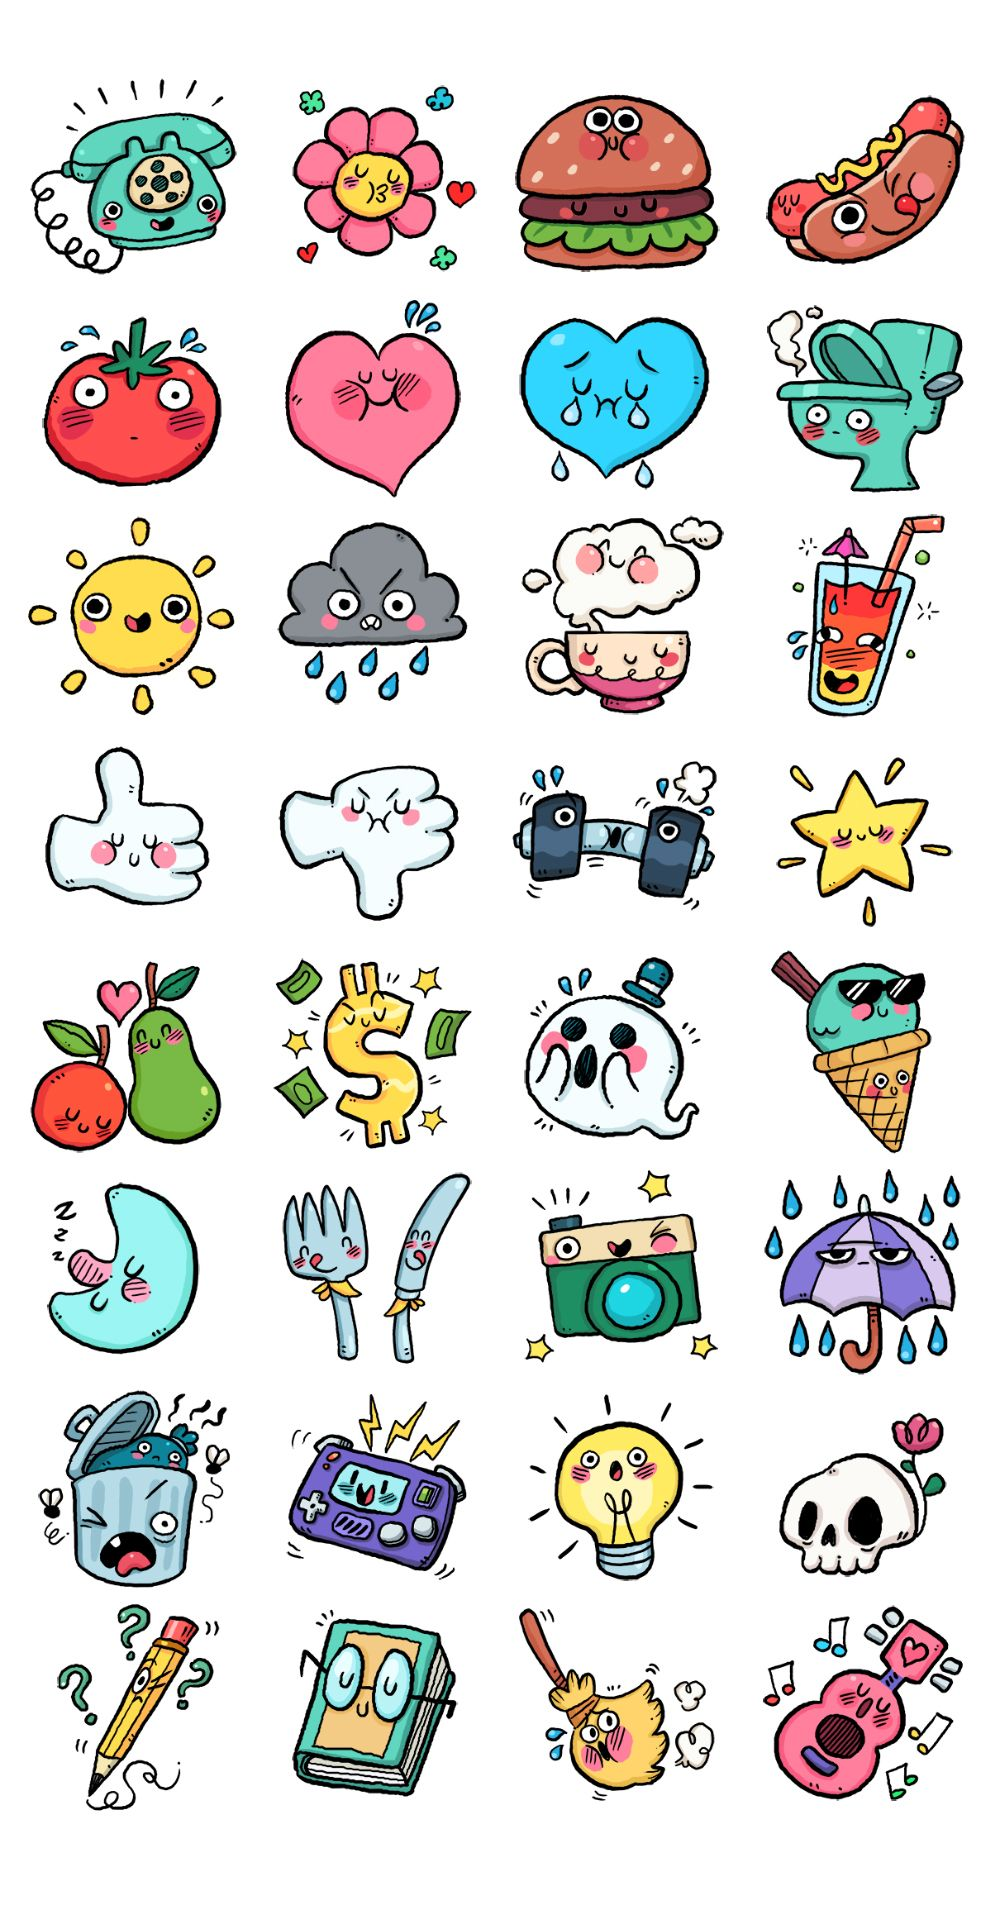 Chat App Stickers